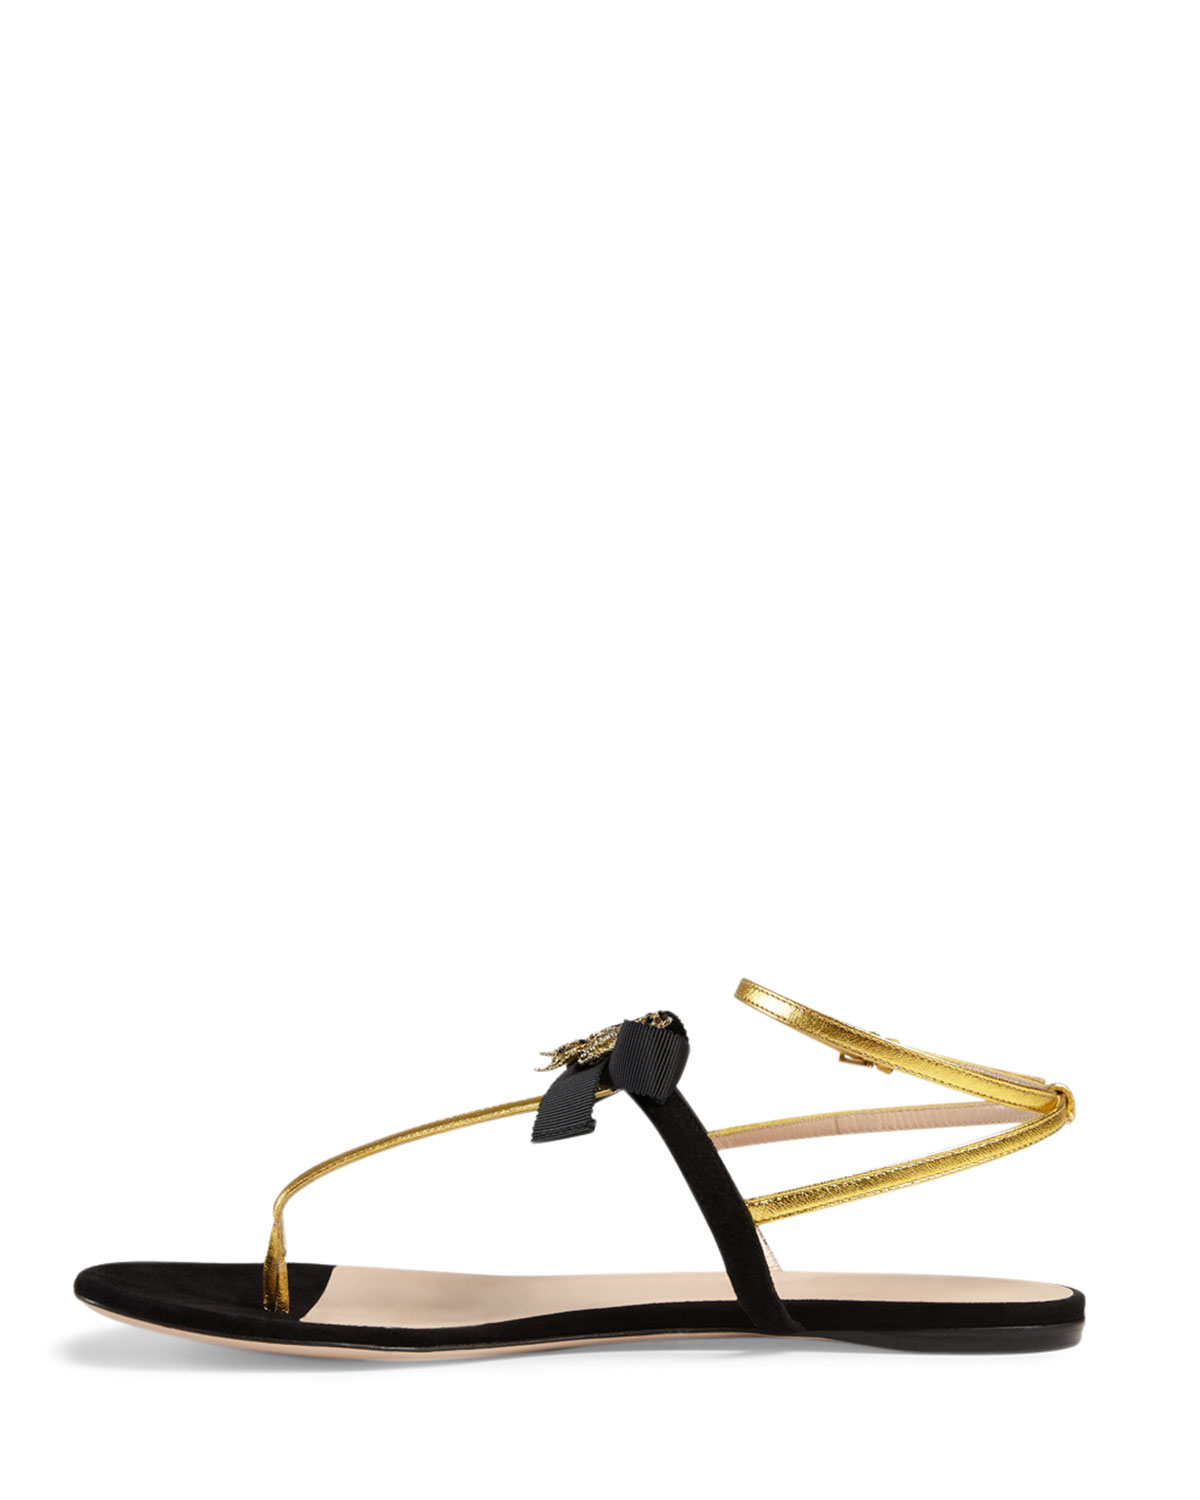 d7518f93d143 Lyst - Gucci Moody Bow-Detail Flat Sandals in Black